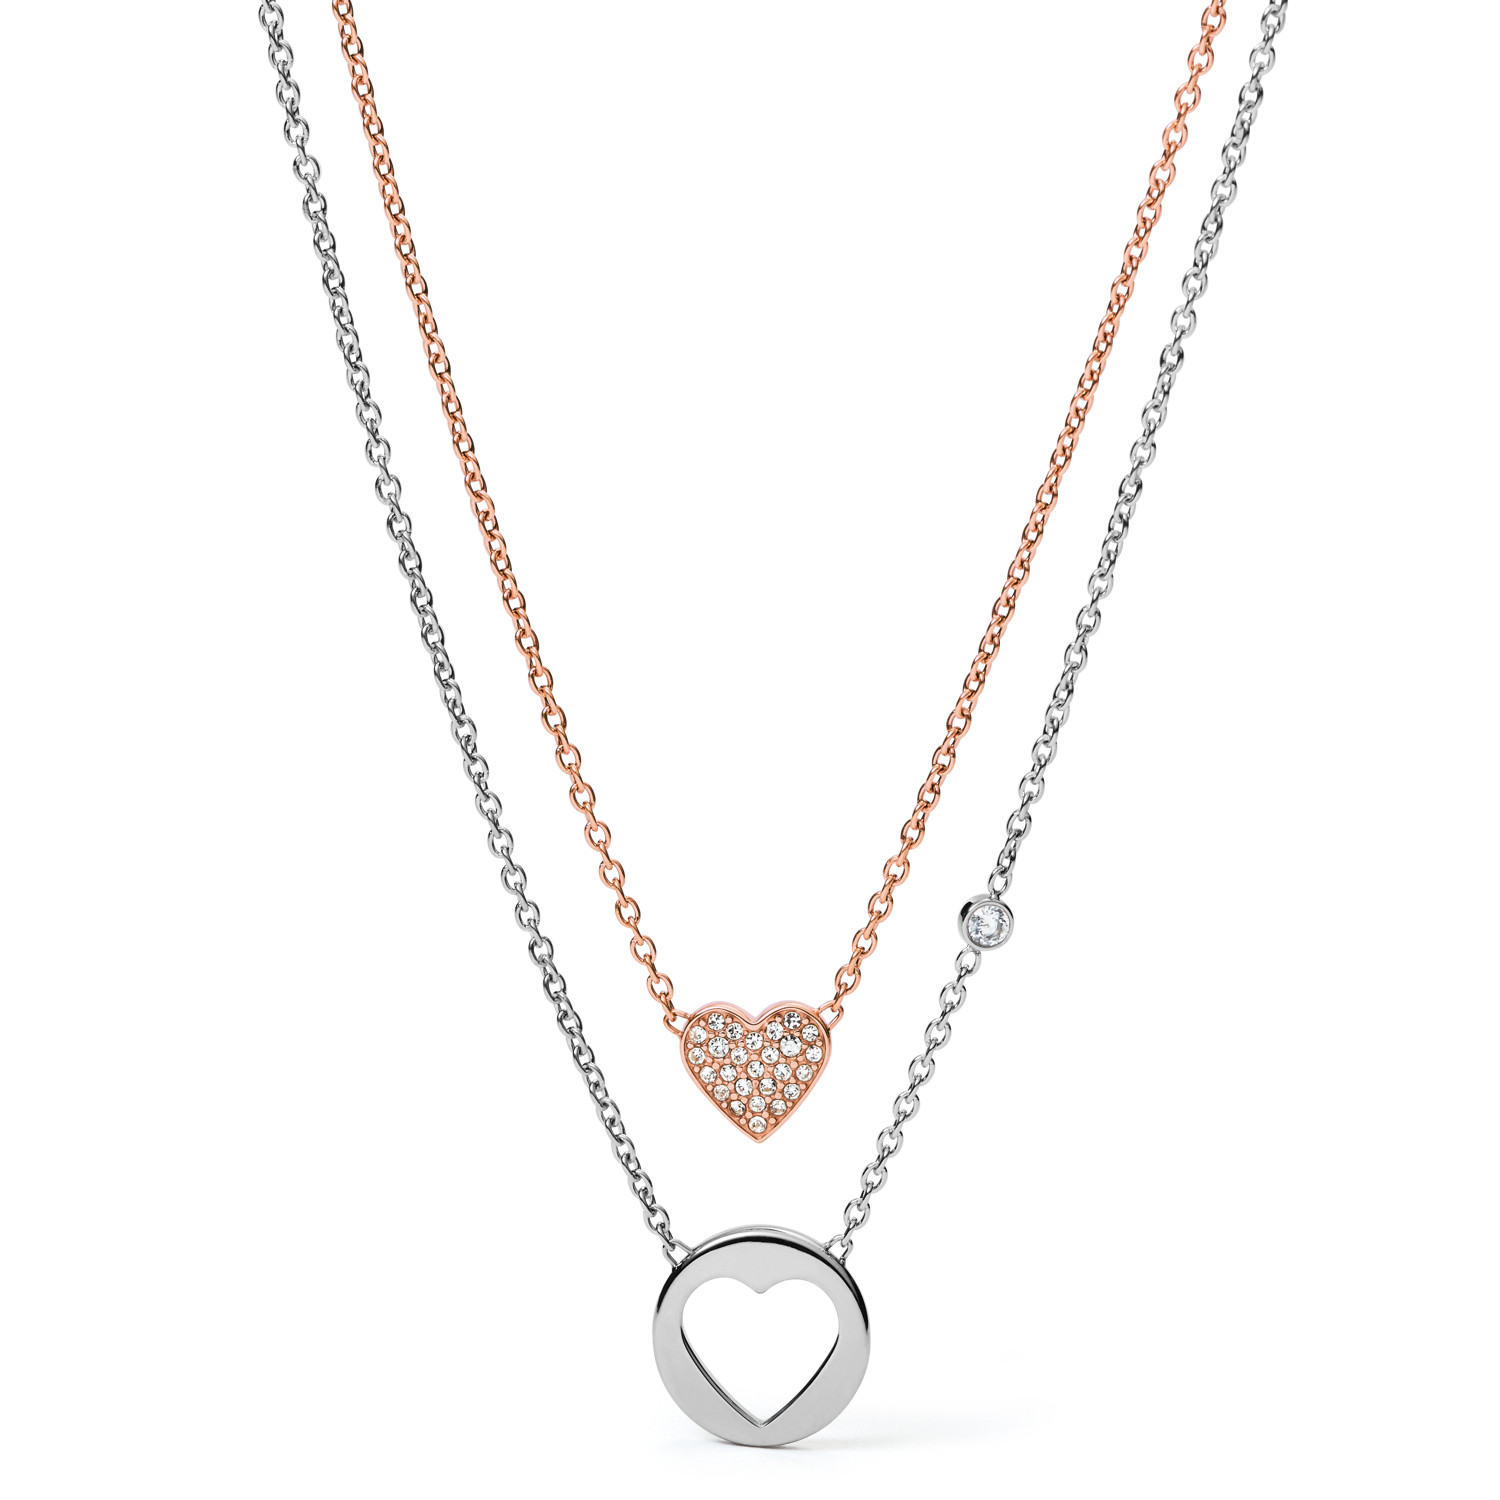 jewellery misuzi silver necklace gold heart collection products